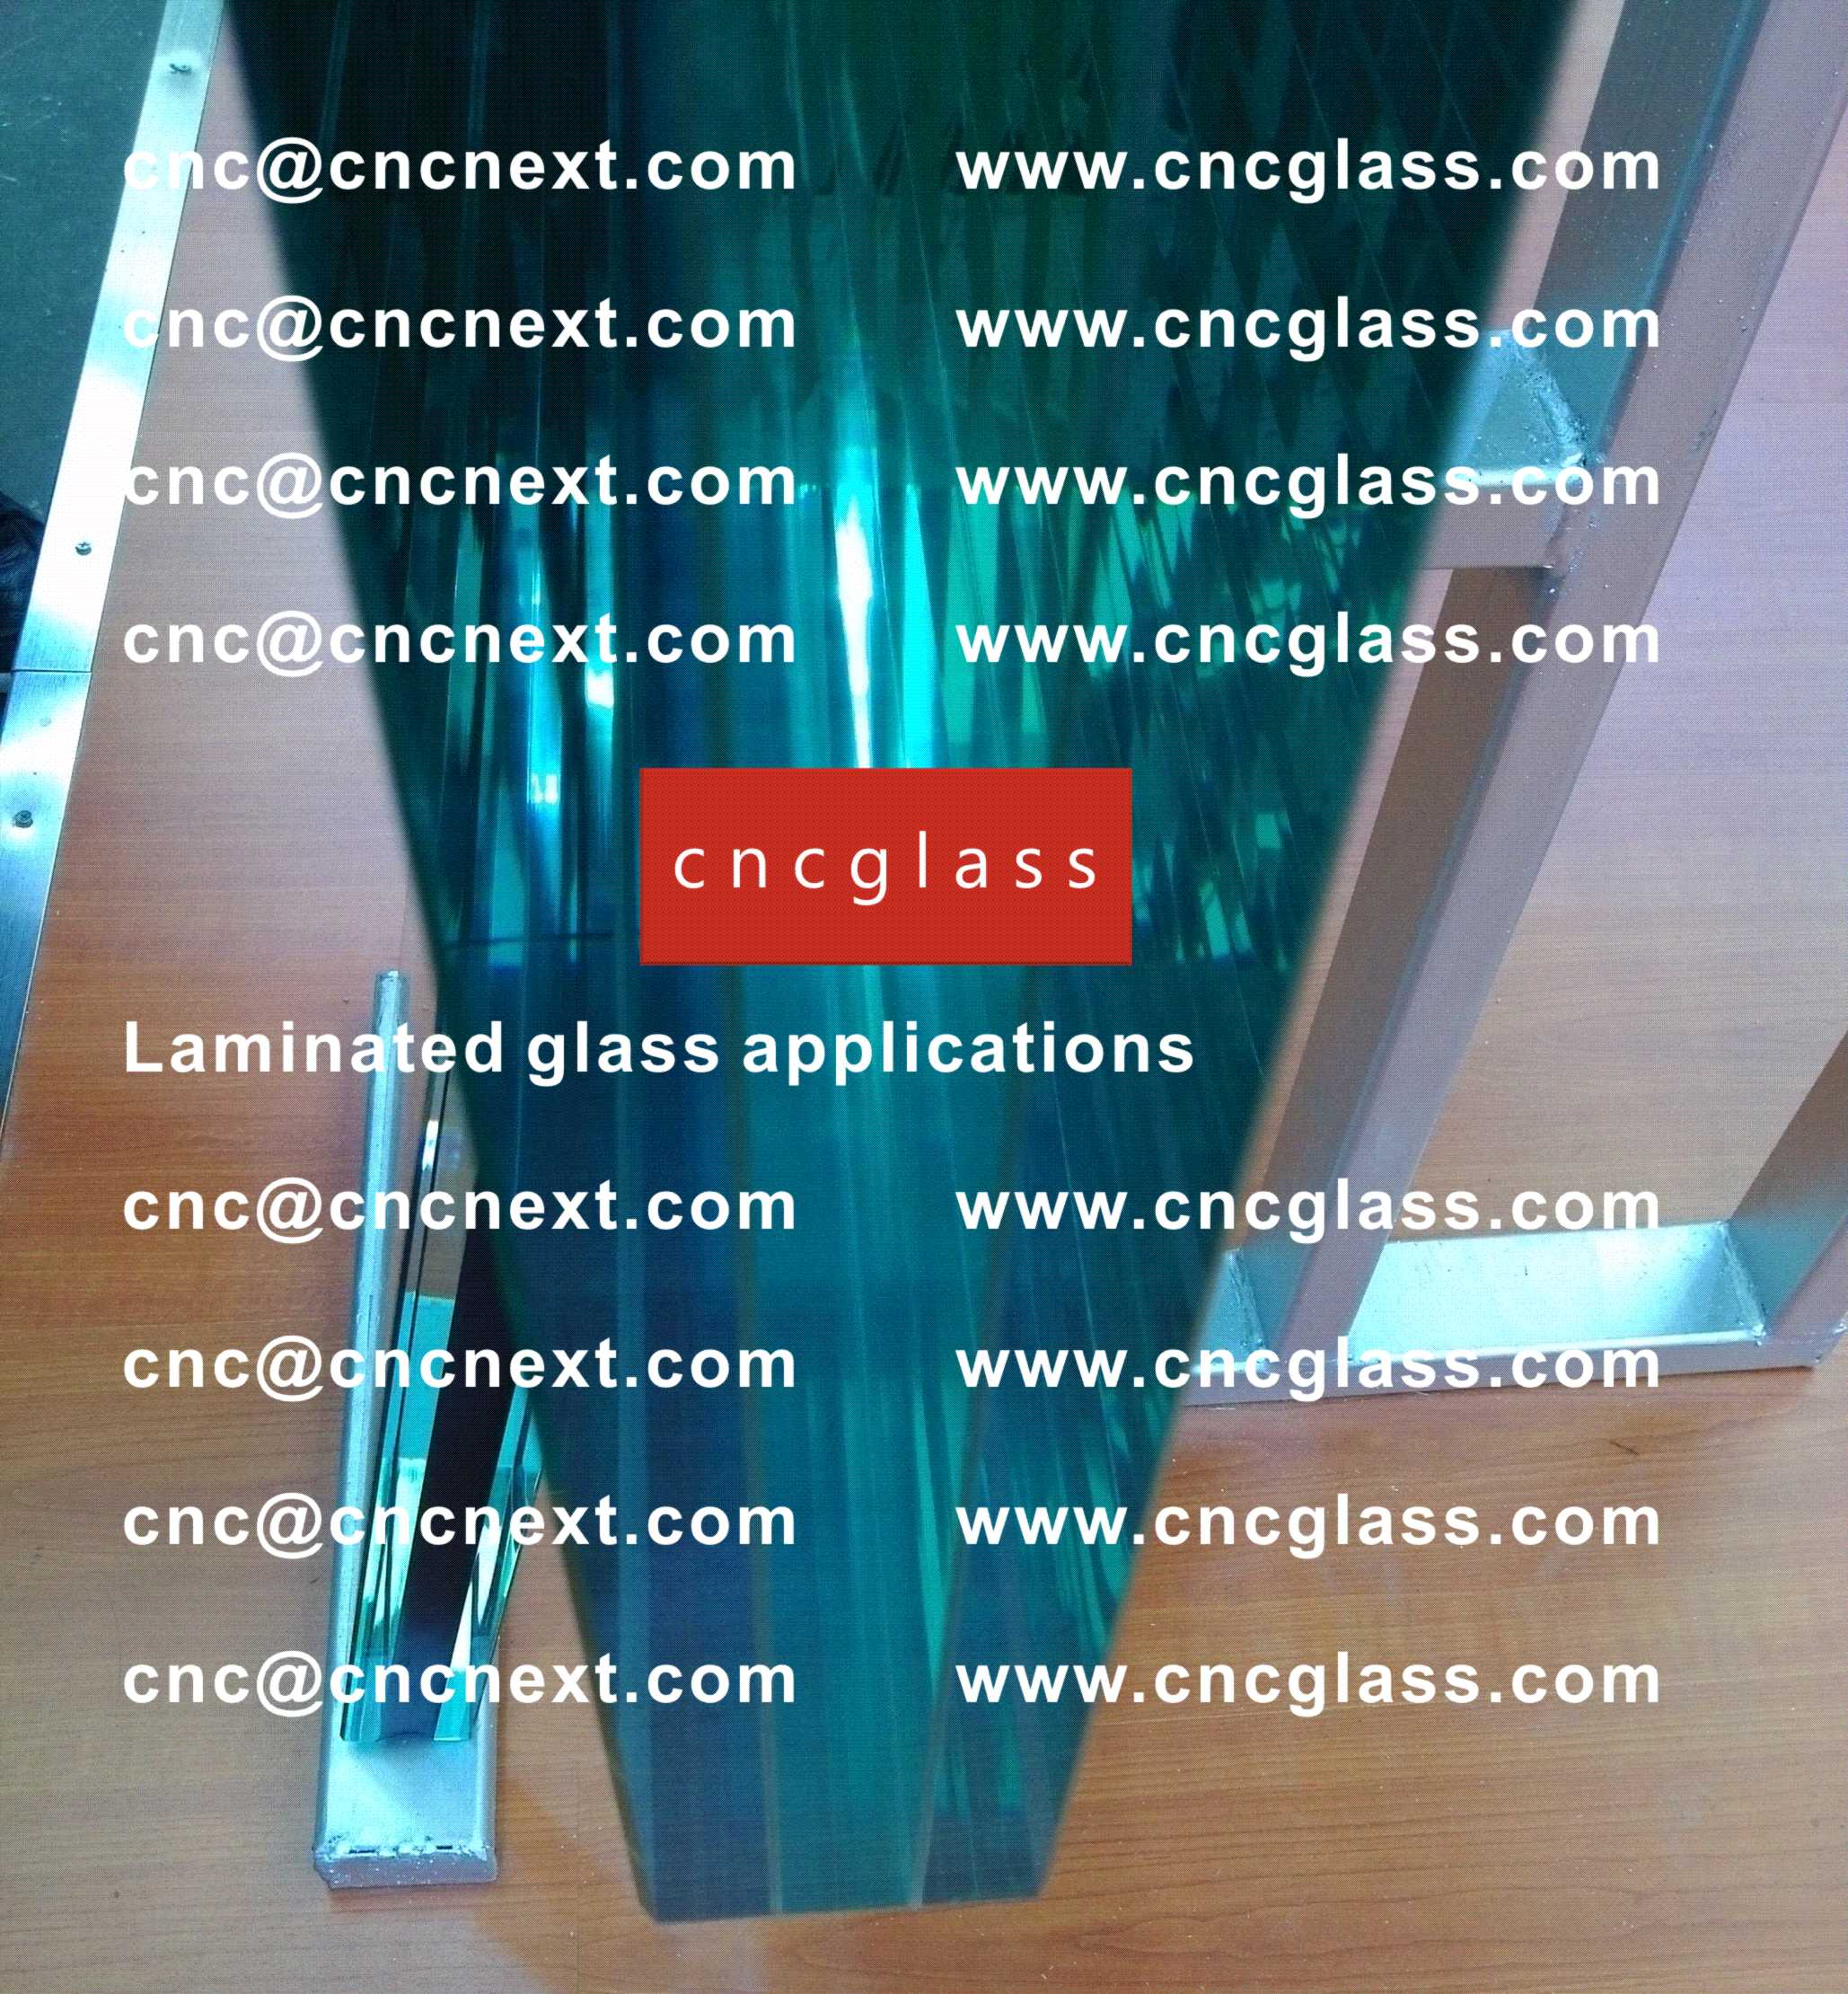 008 EVAFORCE LAMINATED GLASS